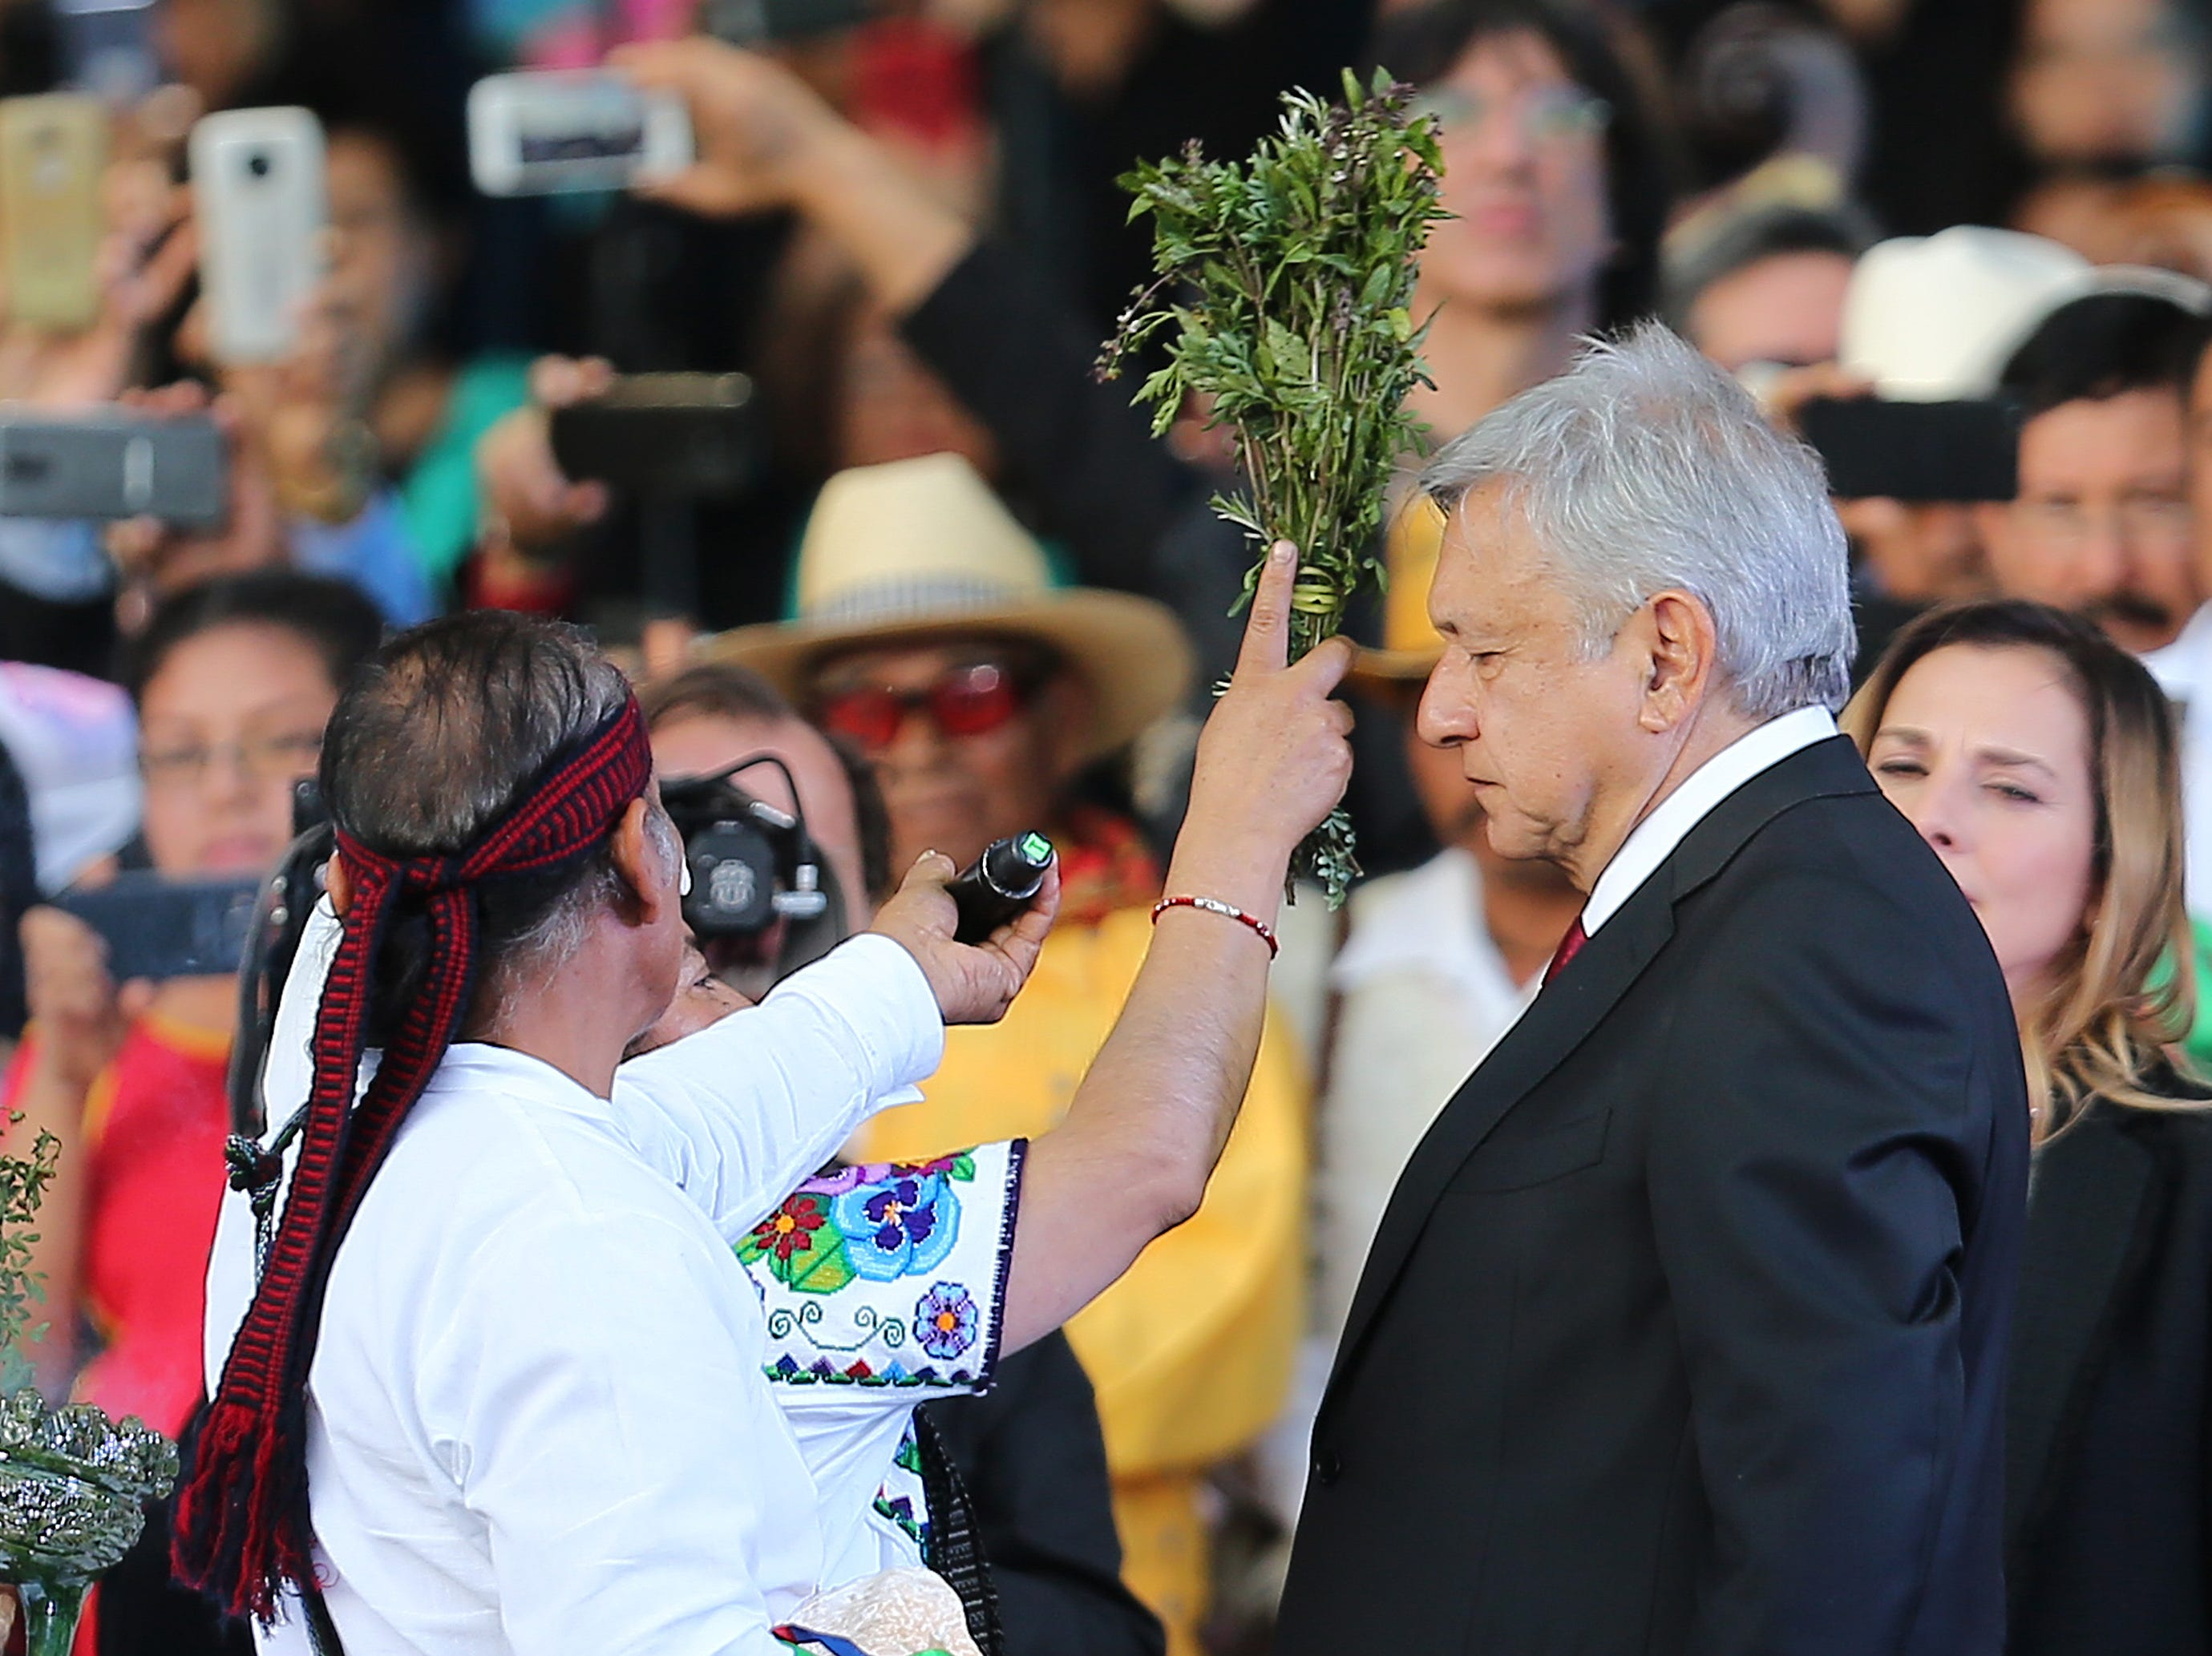 MEXICO CITY, MEXICO - DECEMBER 01: Andres Manuel Lopez Obrador President of Mexico takes part in an indigenous ceremony during the events of the Presidential Investiture as part of the 65th Mexico Presidential Inauguration at Zocalo on December 01, 2018 in Mexico City, Mexico. (Photo by Manuel Velasquez/Getty Images)